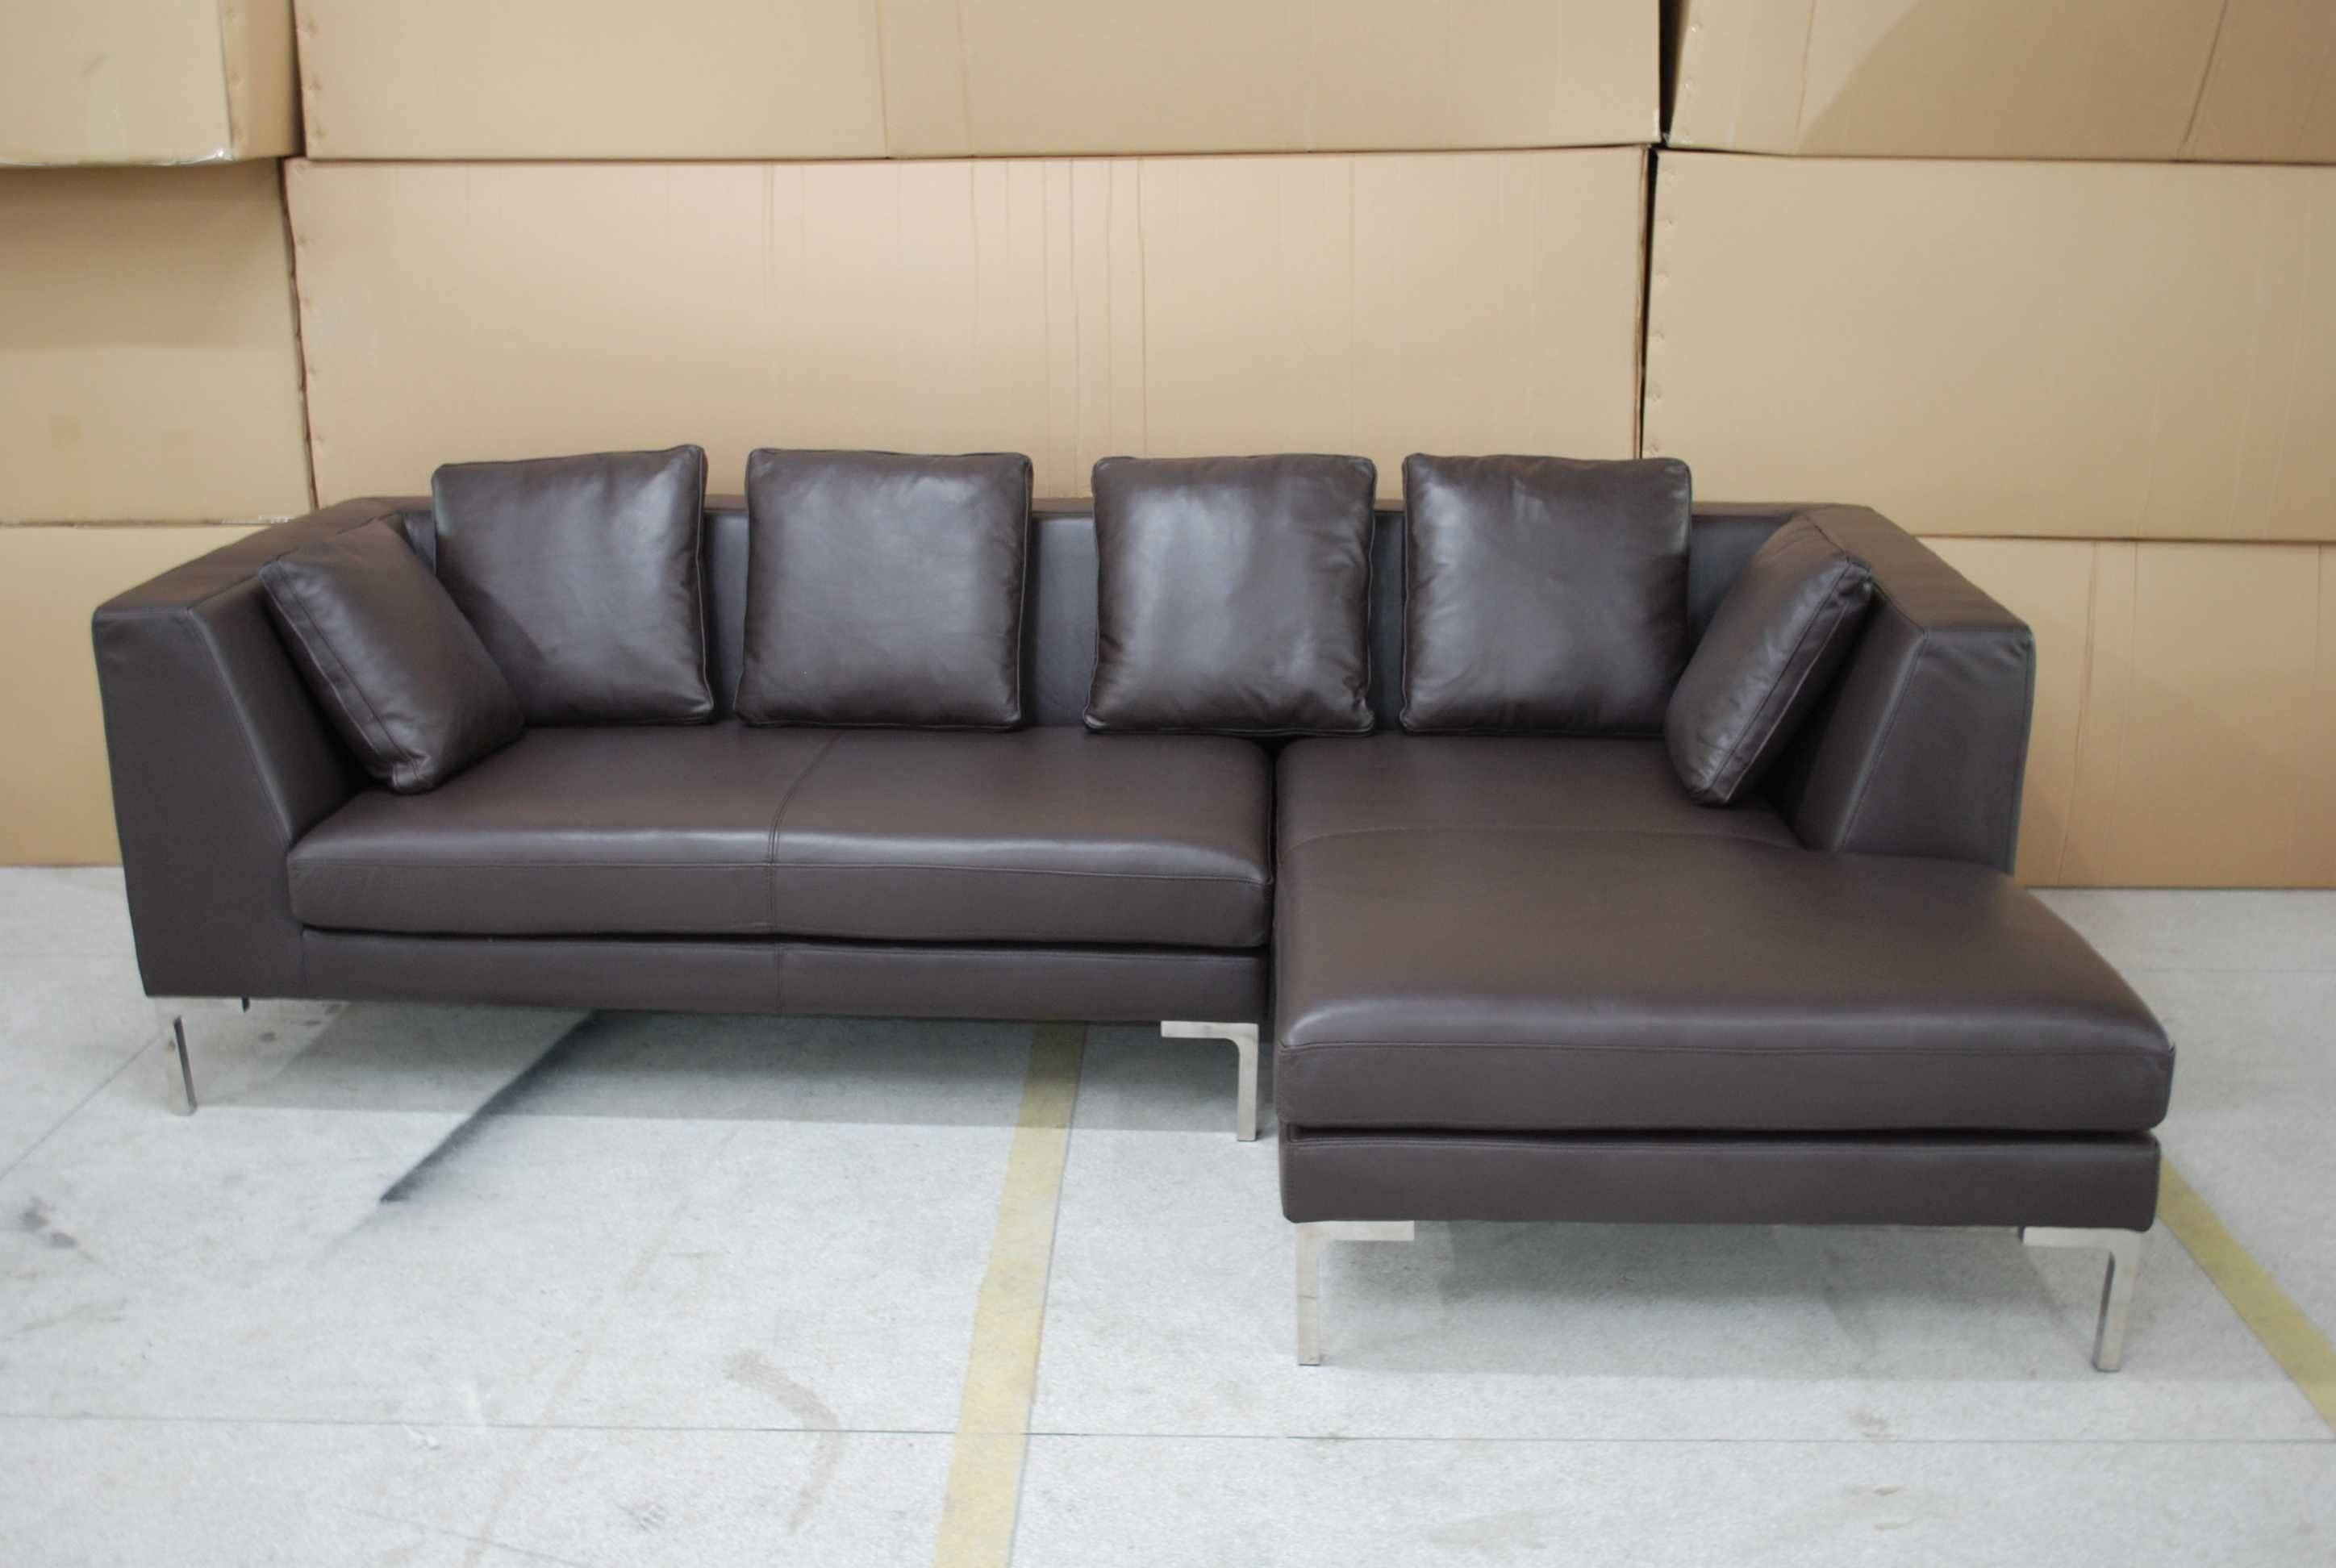 Modern Leather Corner Sofas With Modular Leather Corner Sofa intended for Cheap Corner Sofa Beds (Image 18 of 30)